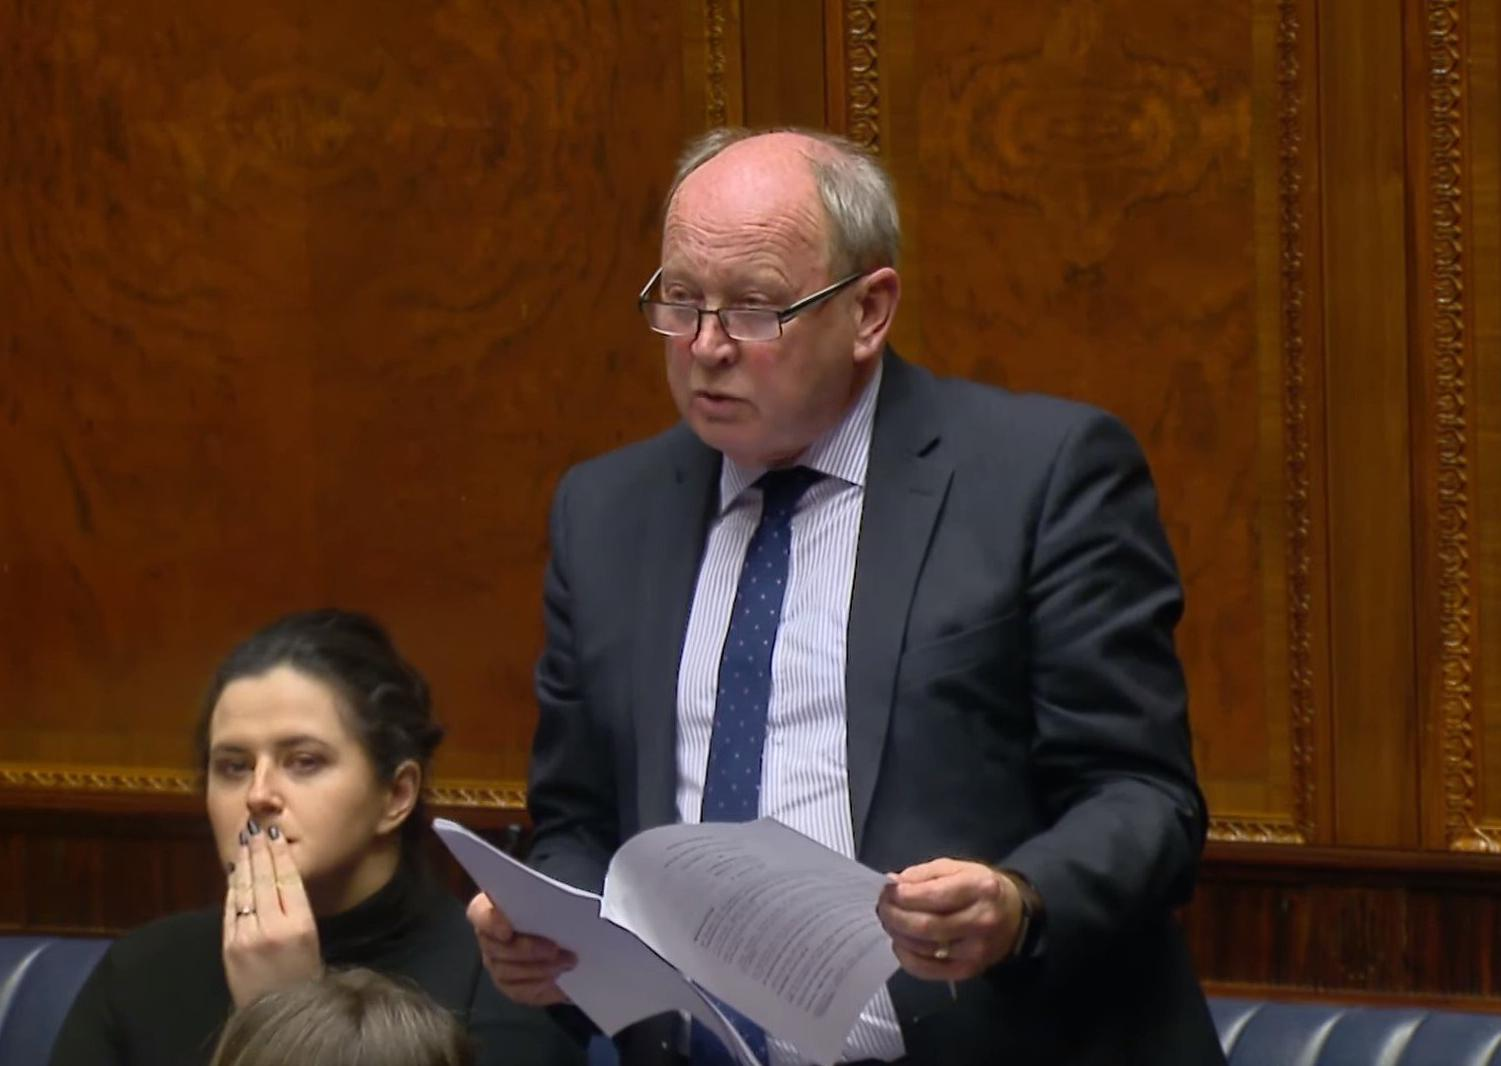 Jim Allister: Unionists seem set to empower a Bill of Rights for Northern Ireland, which will once again mark the Province out as different and a place apart